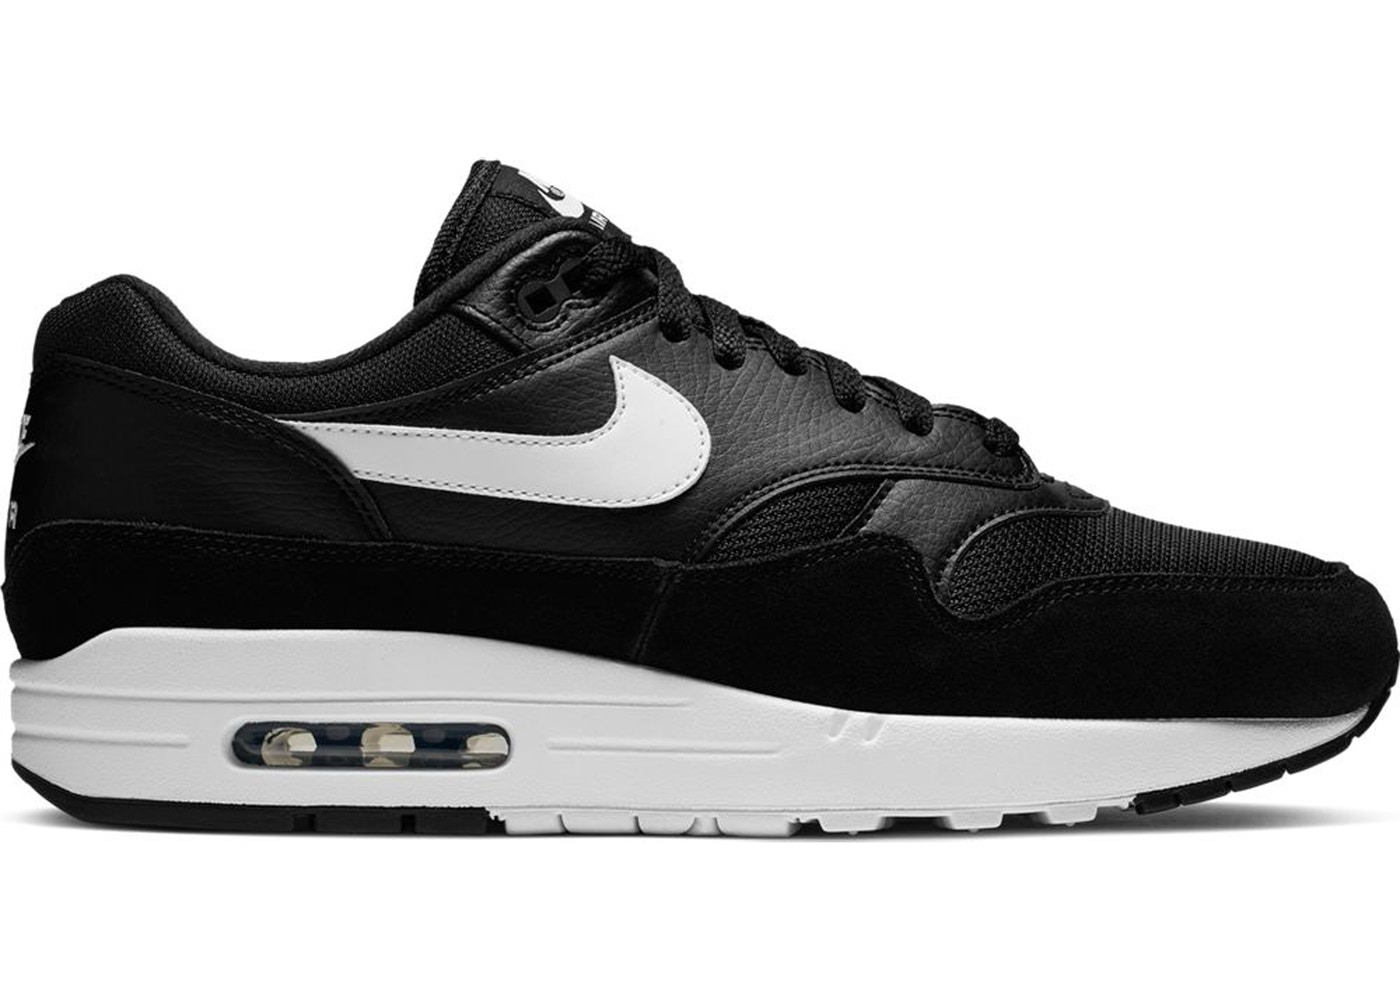 Air Max 1 Black White (2019)